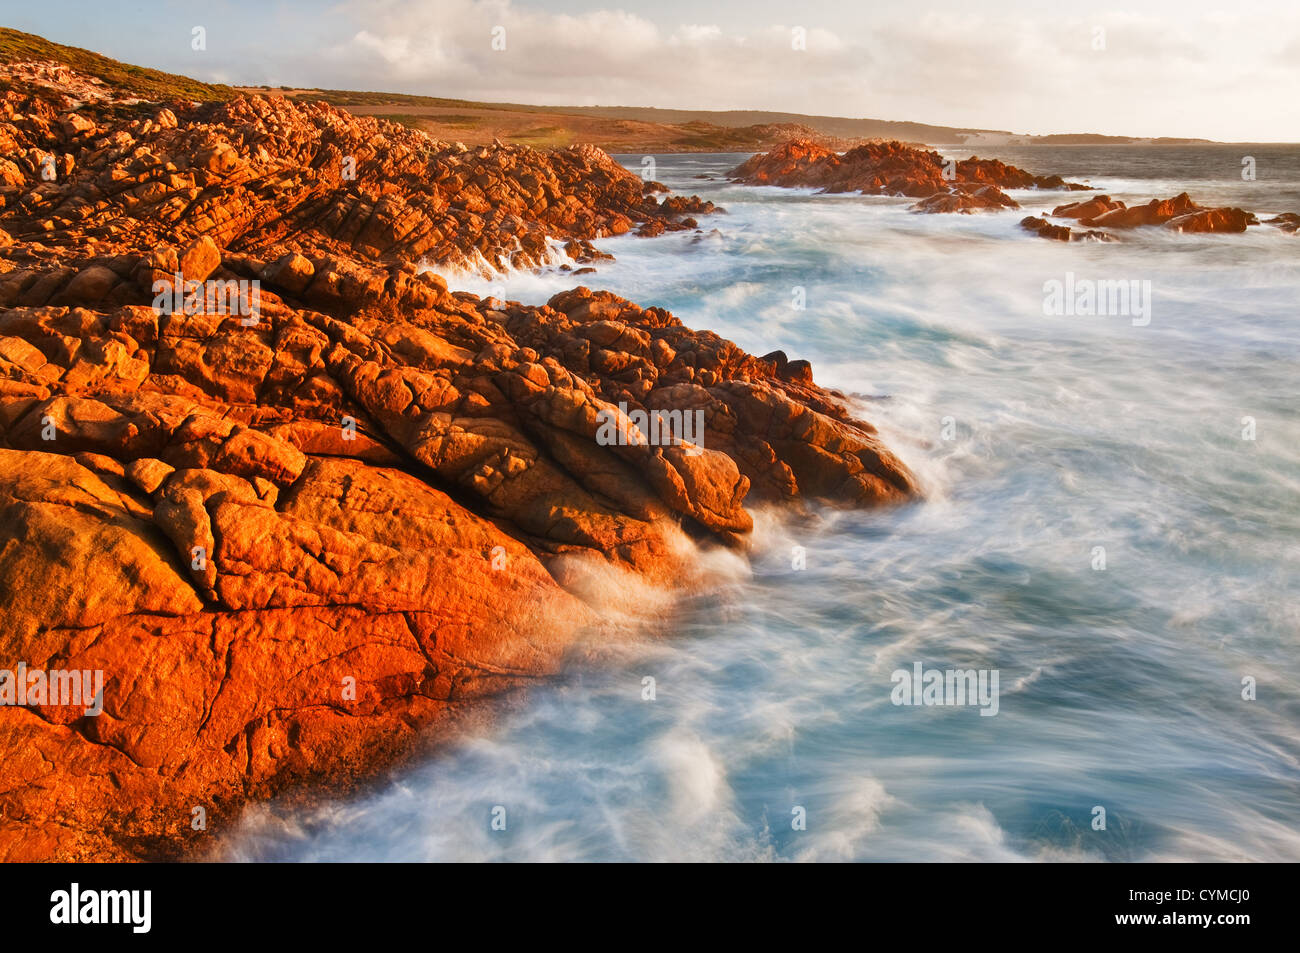 Waves breaking at the rugged coast of Cape Clairault. - Stock Image